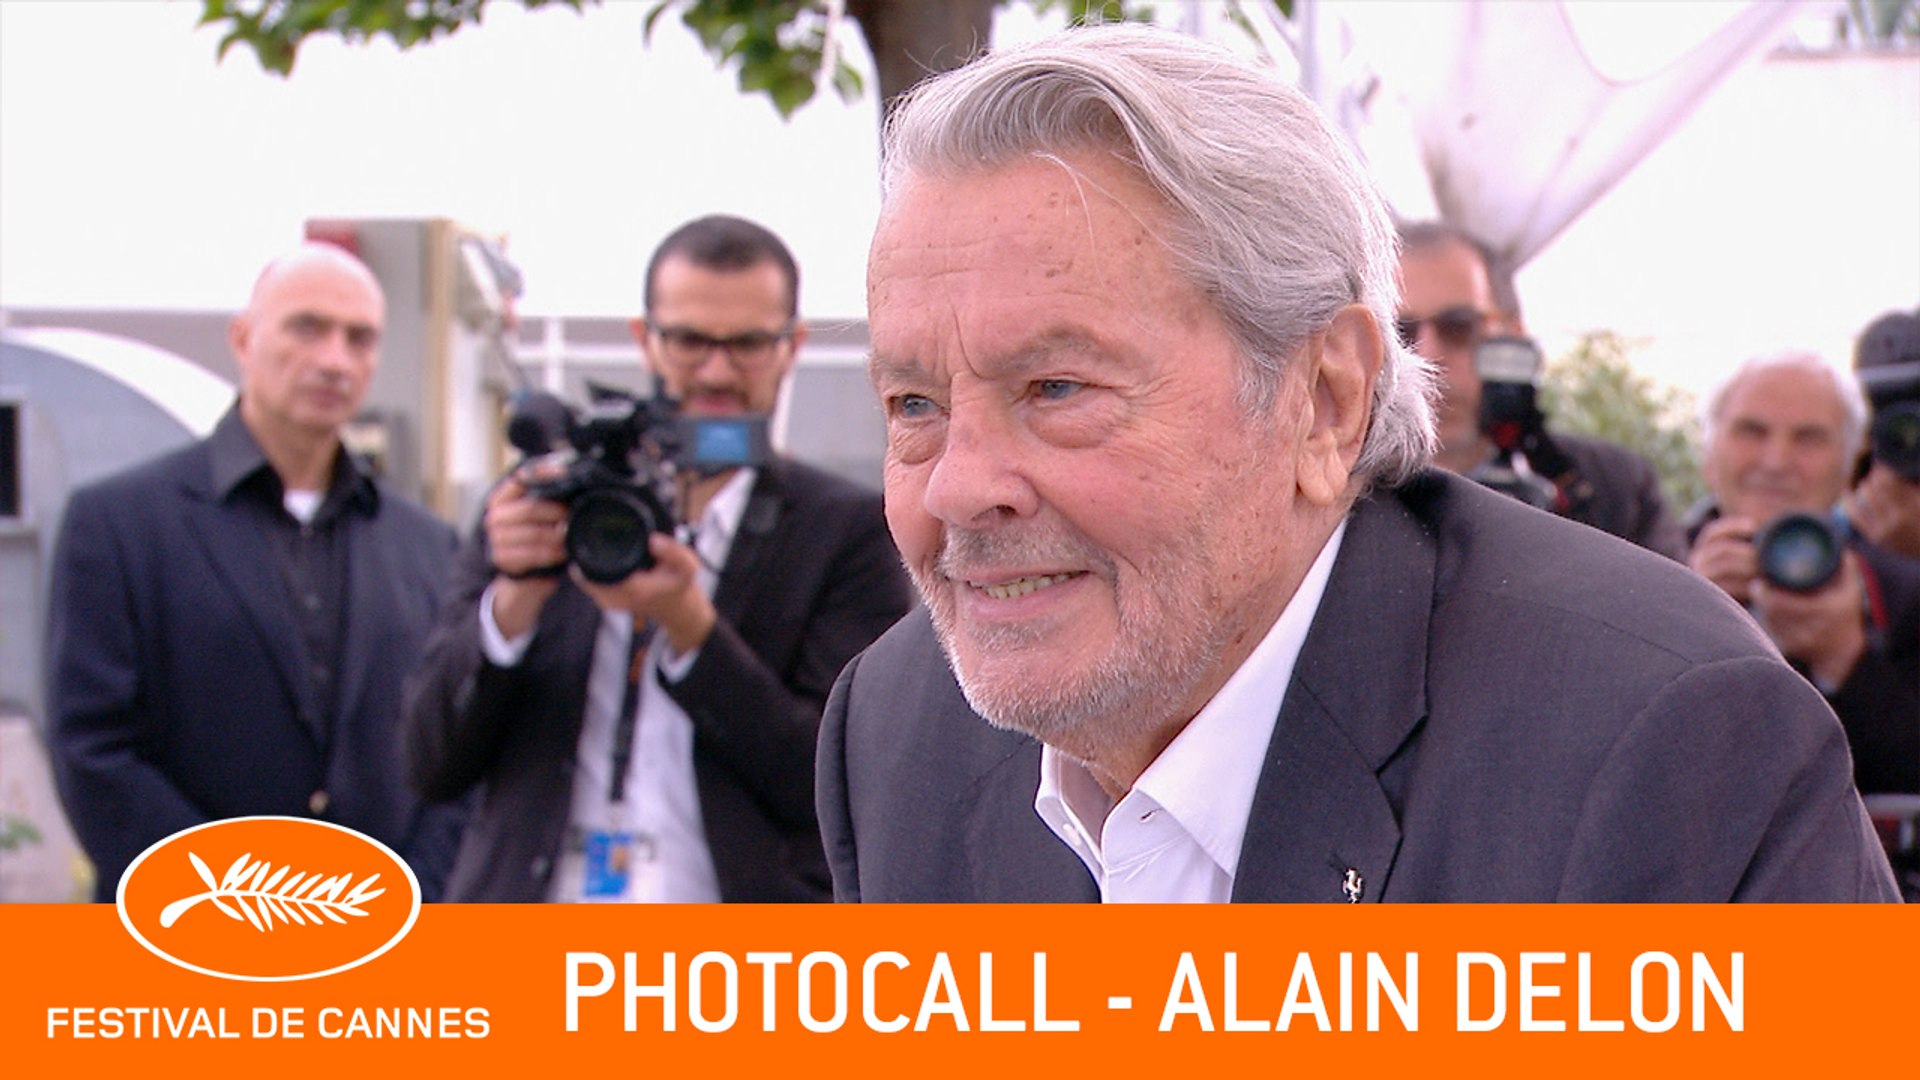 ALAIN DELON - Photocall - Cannes 2019 - EV